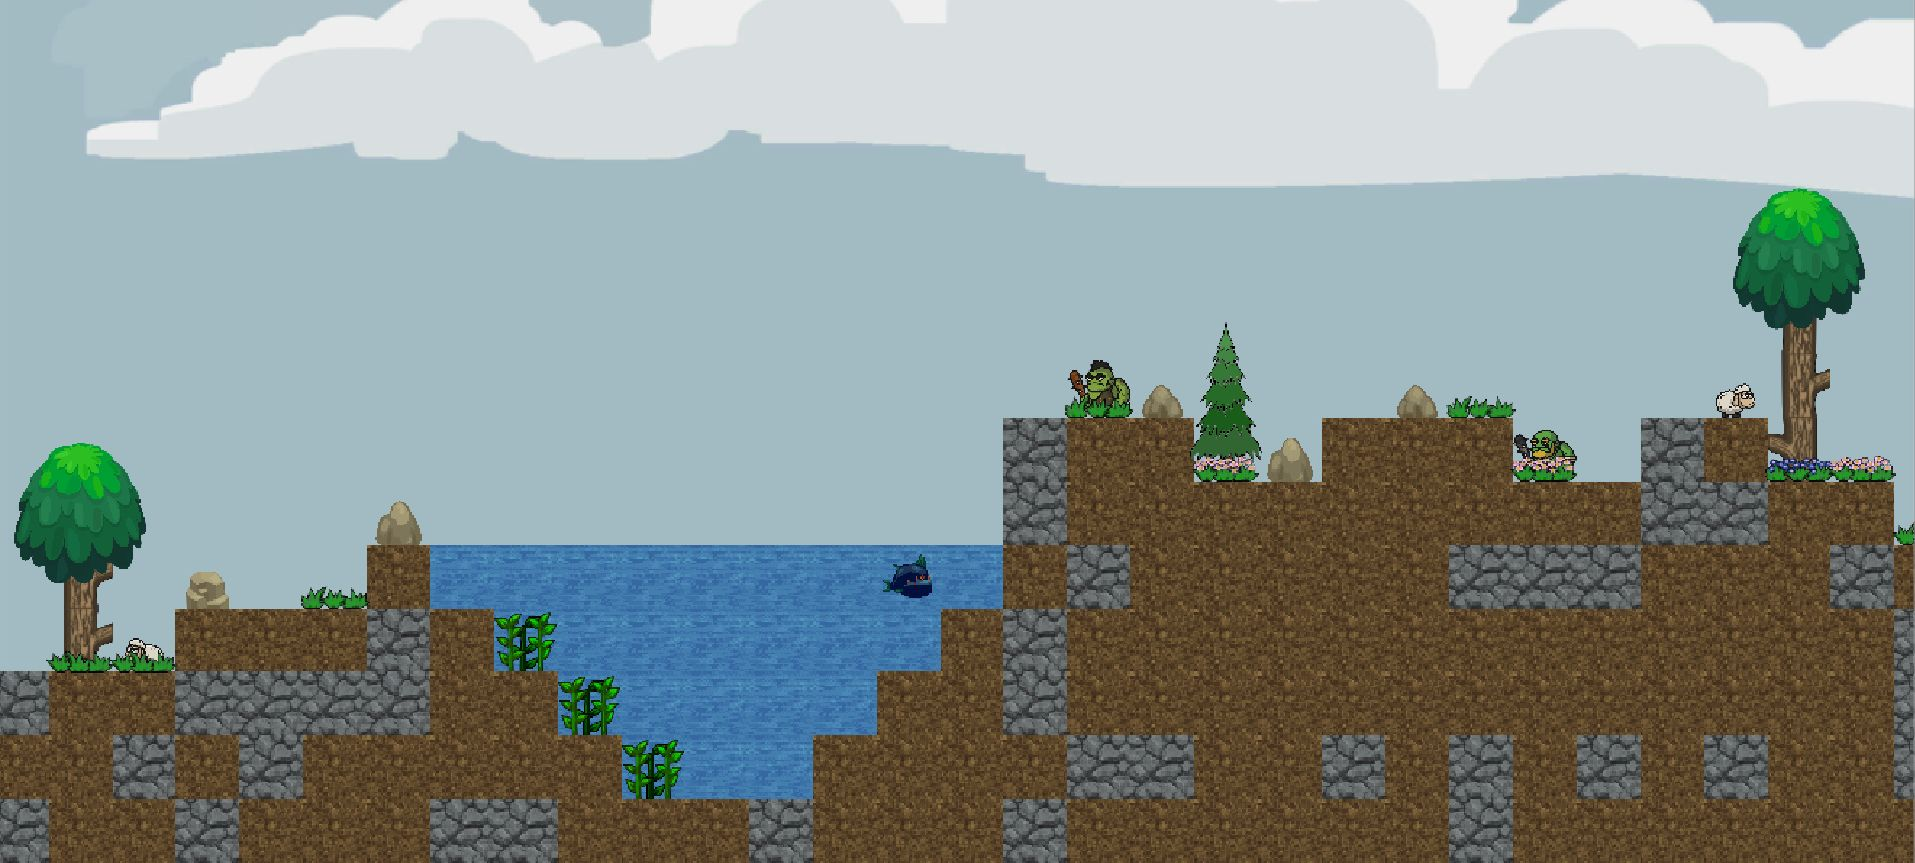 Procedural 2D world generation framework - Unity Connect